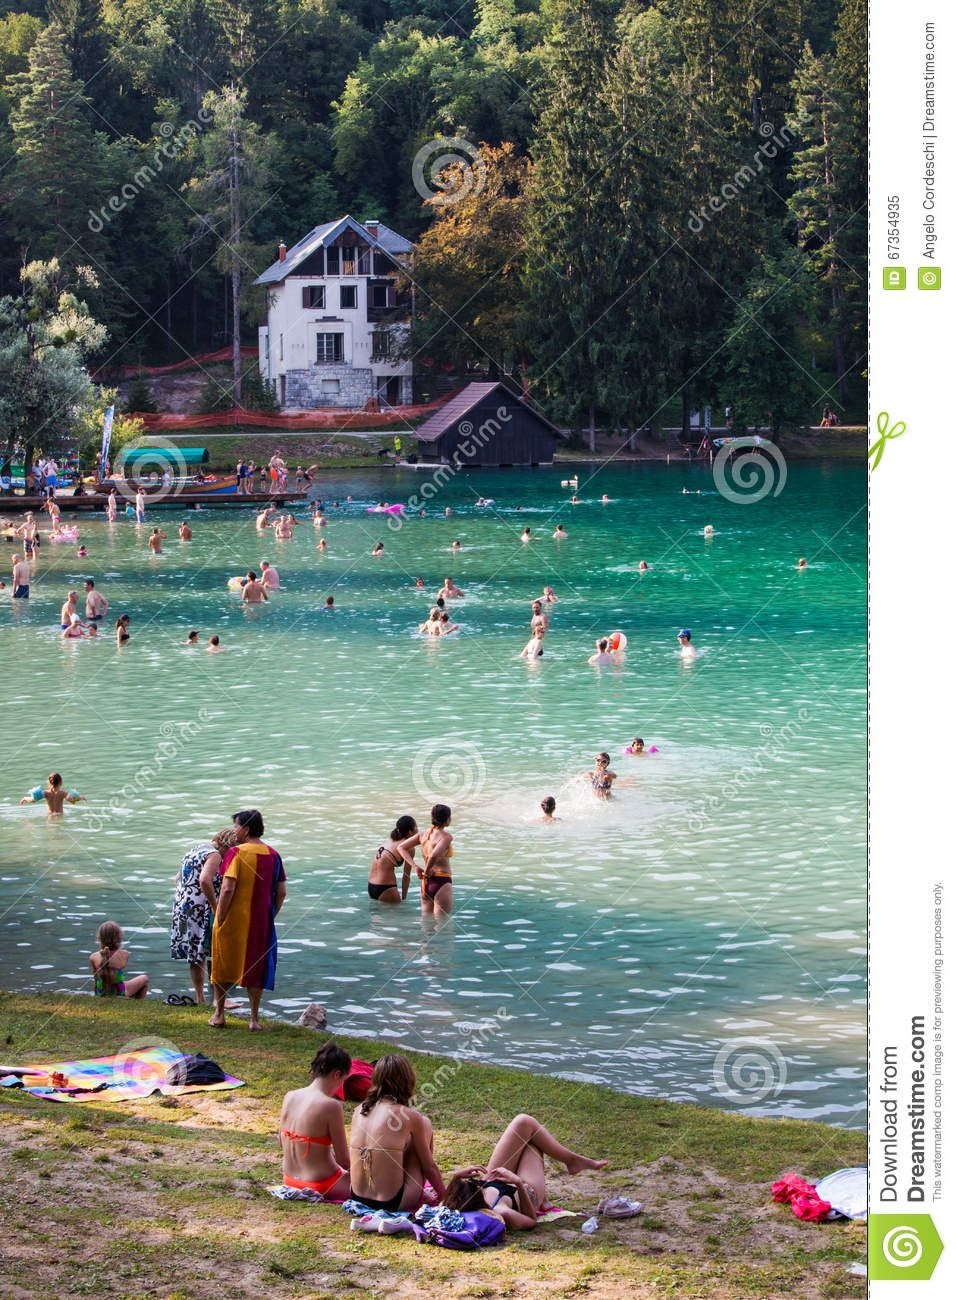 Lake, Nature And Leisure People Tourists. Bled, Slovenia - Download From Over 41 Million High Quality Stock Photos, Images, Vectors. Sign up for FREE today. Image: 67354935